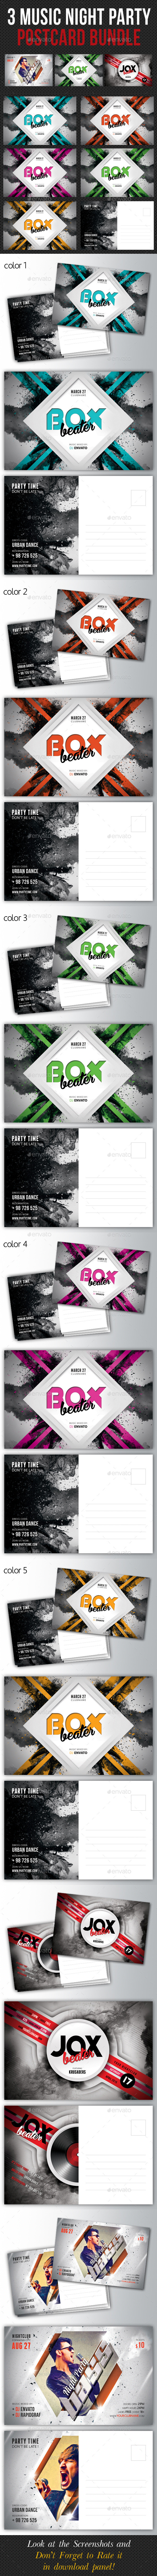 GraphicRiver 3 in 1 Music Night Party Postcard Bundle 10349763